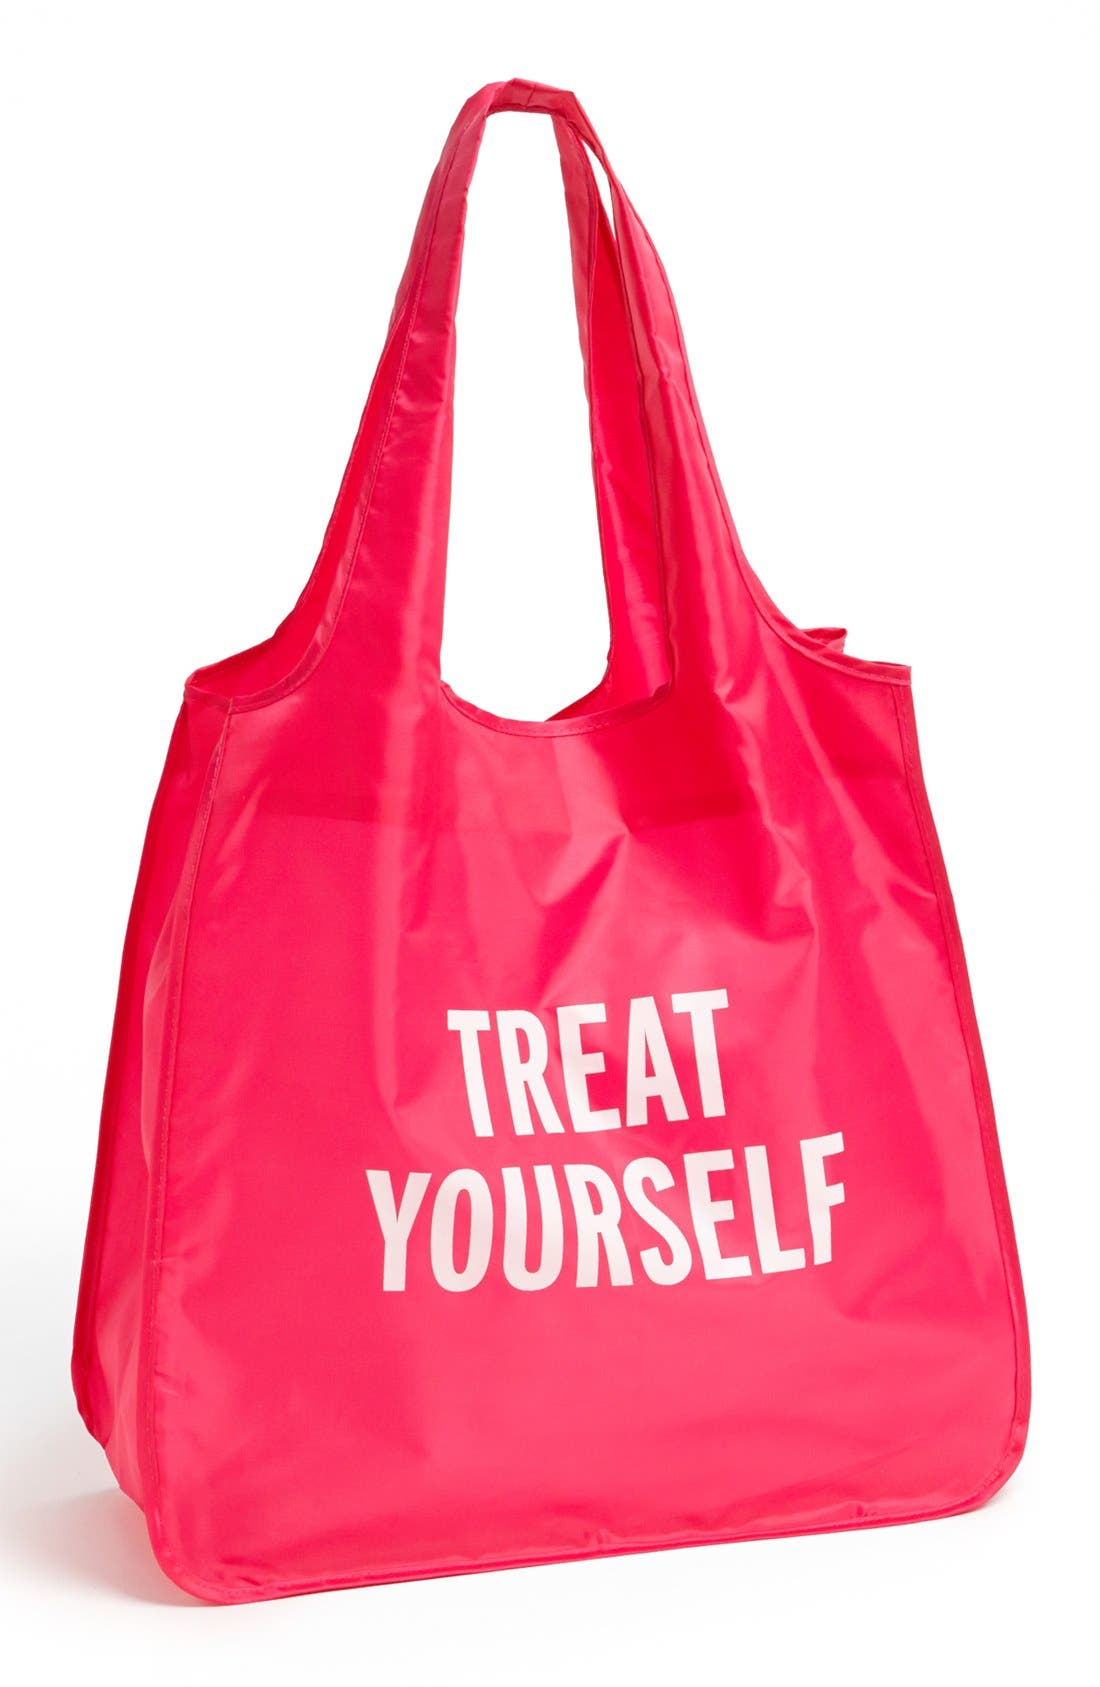 Main Image - kate spade new york 'treat yourself' reusable shopping tote